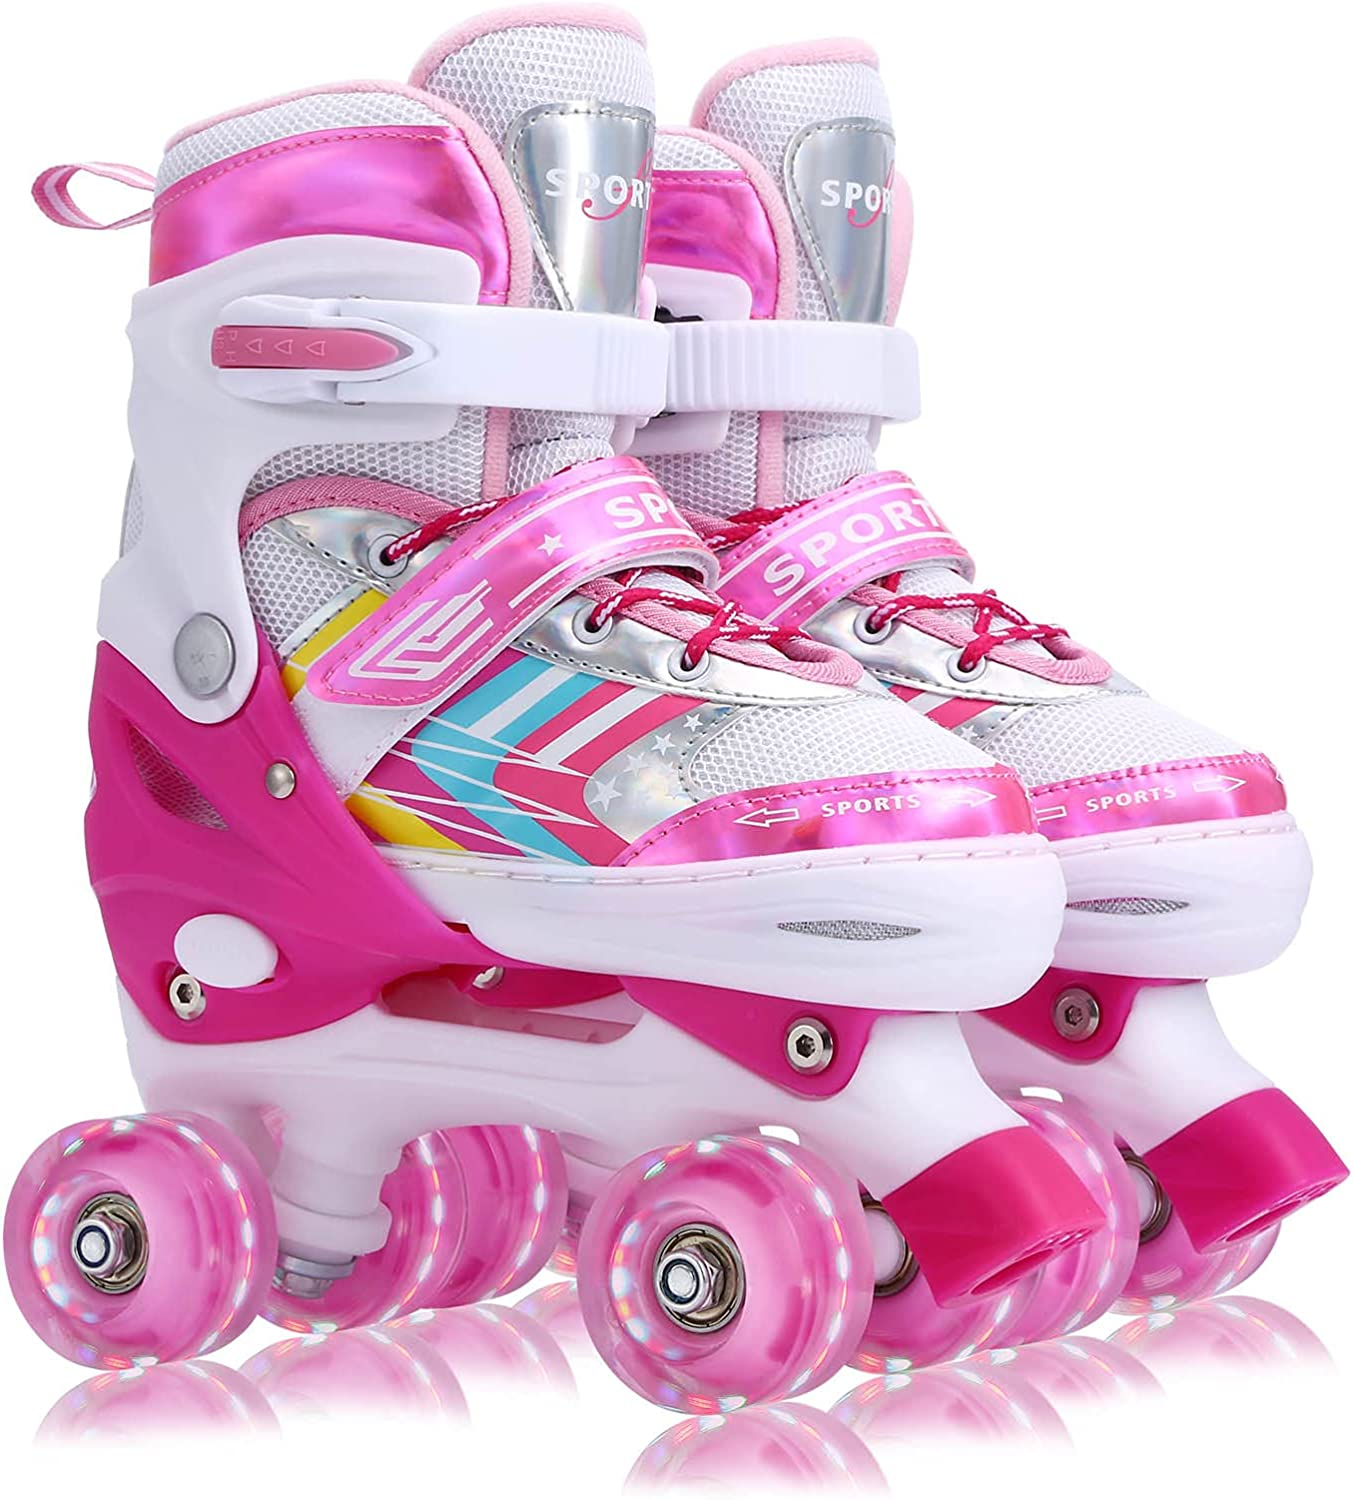 Roller Skates for Kids Girls Boys Size Adjustable Direct stock discount 4 S Beginners Max 88% OFF